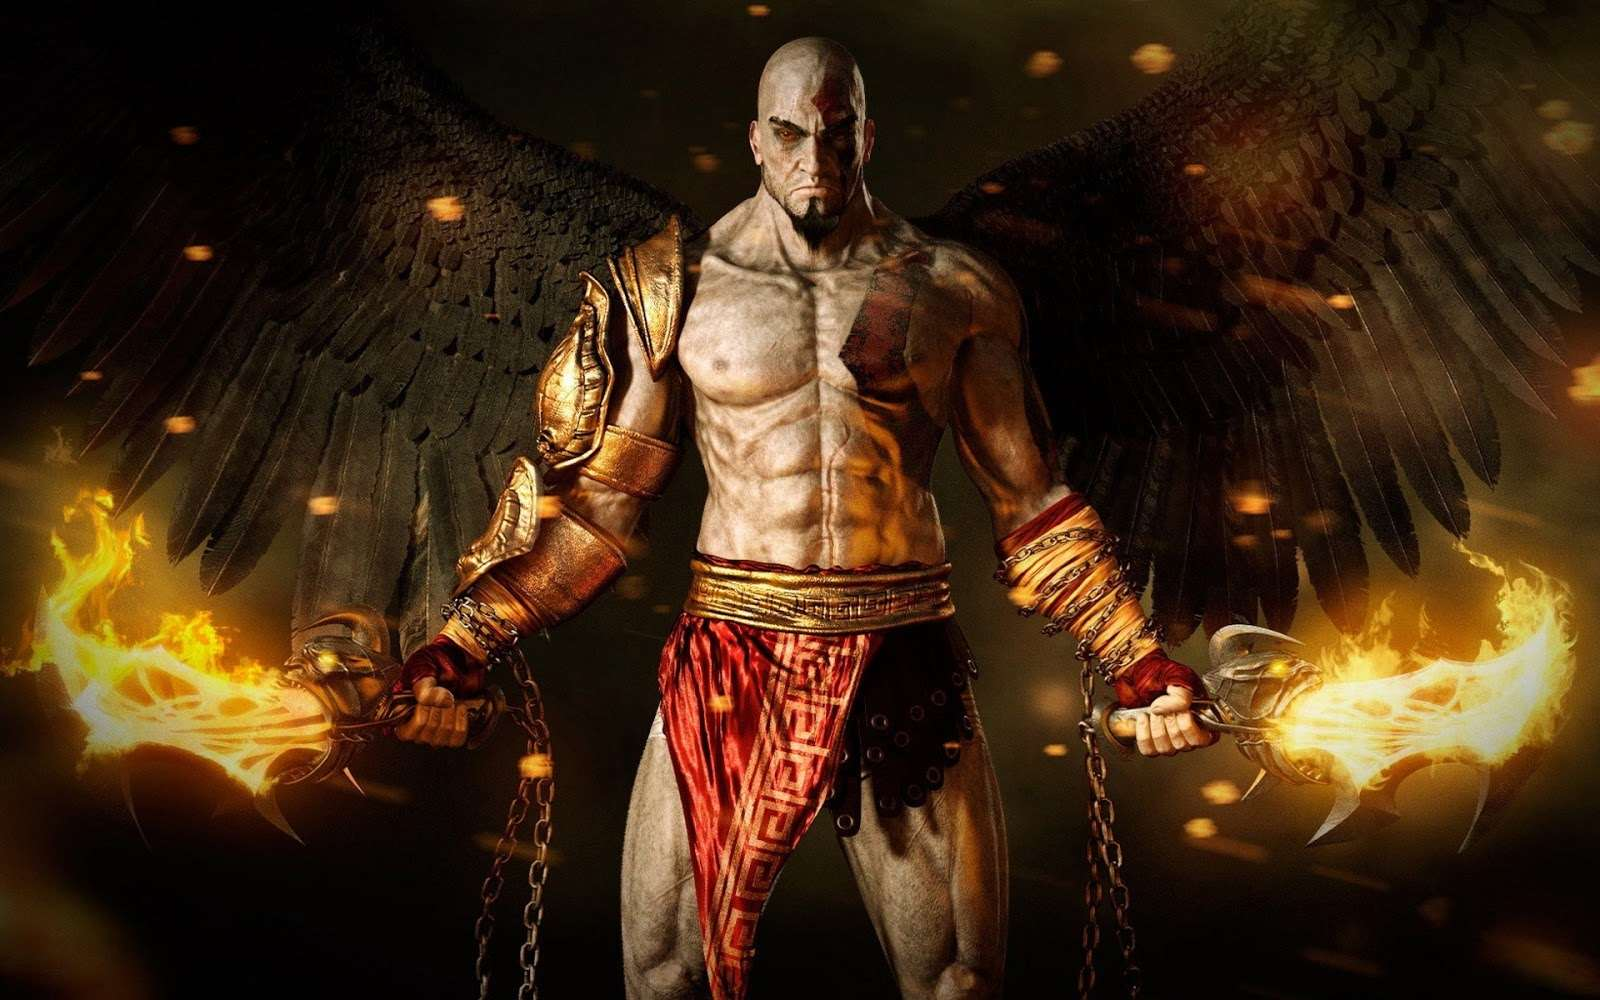 God of War: Ascension and God of War 3 look great on PC with this